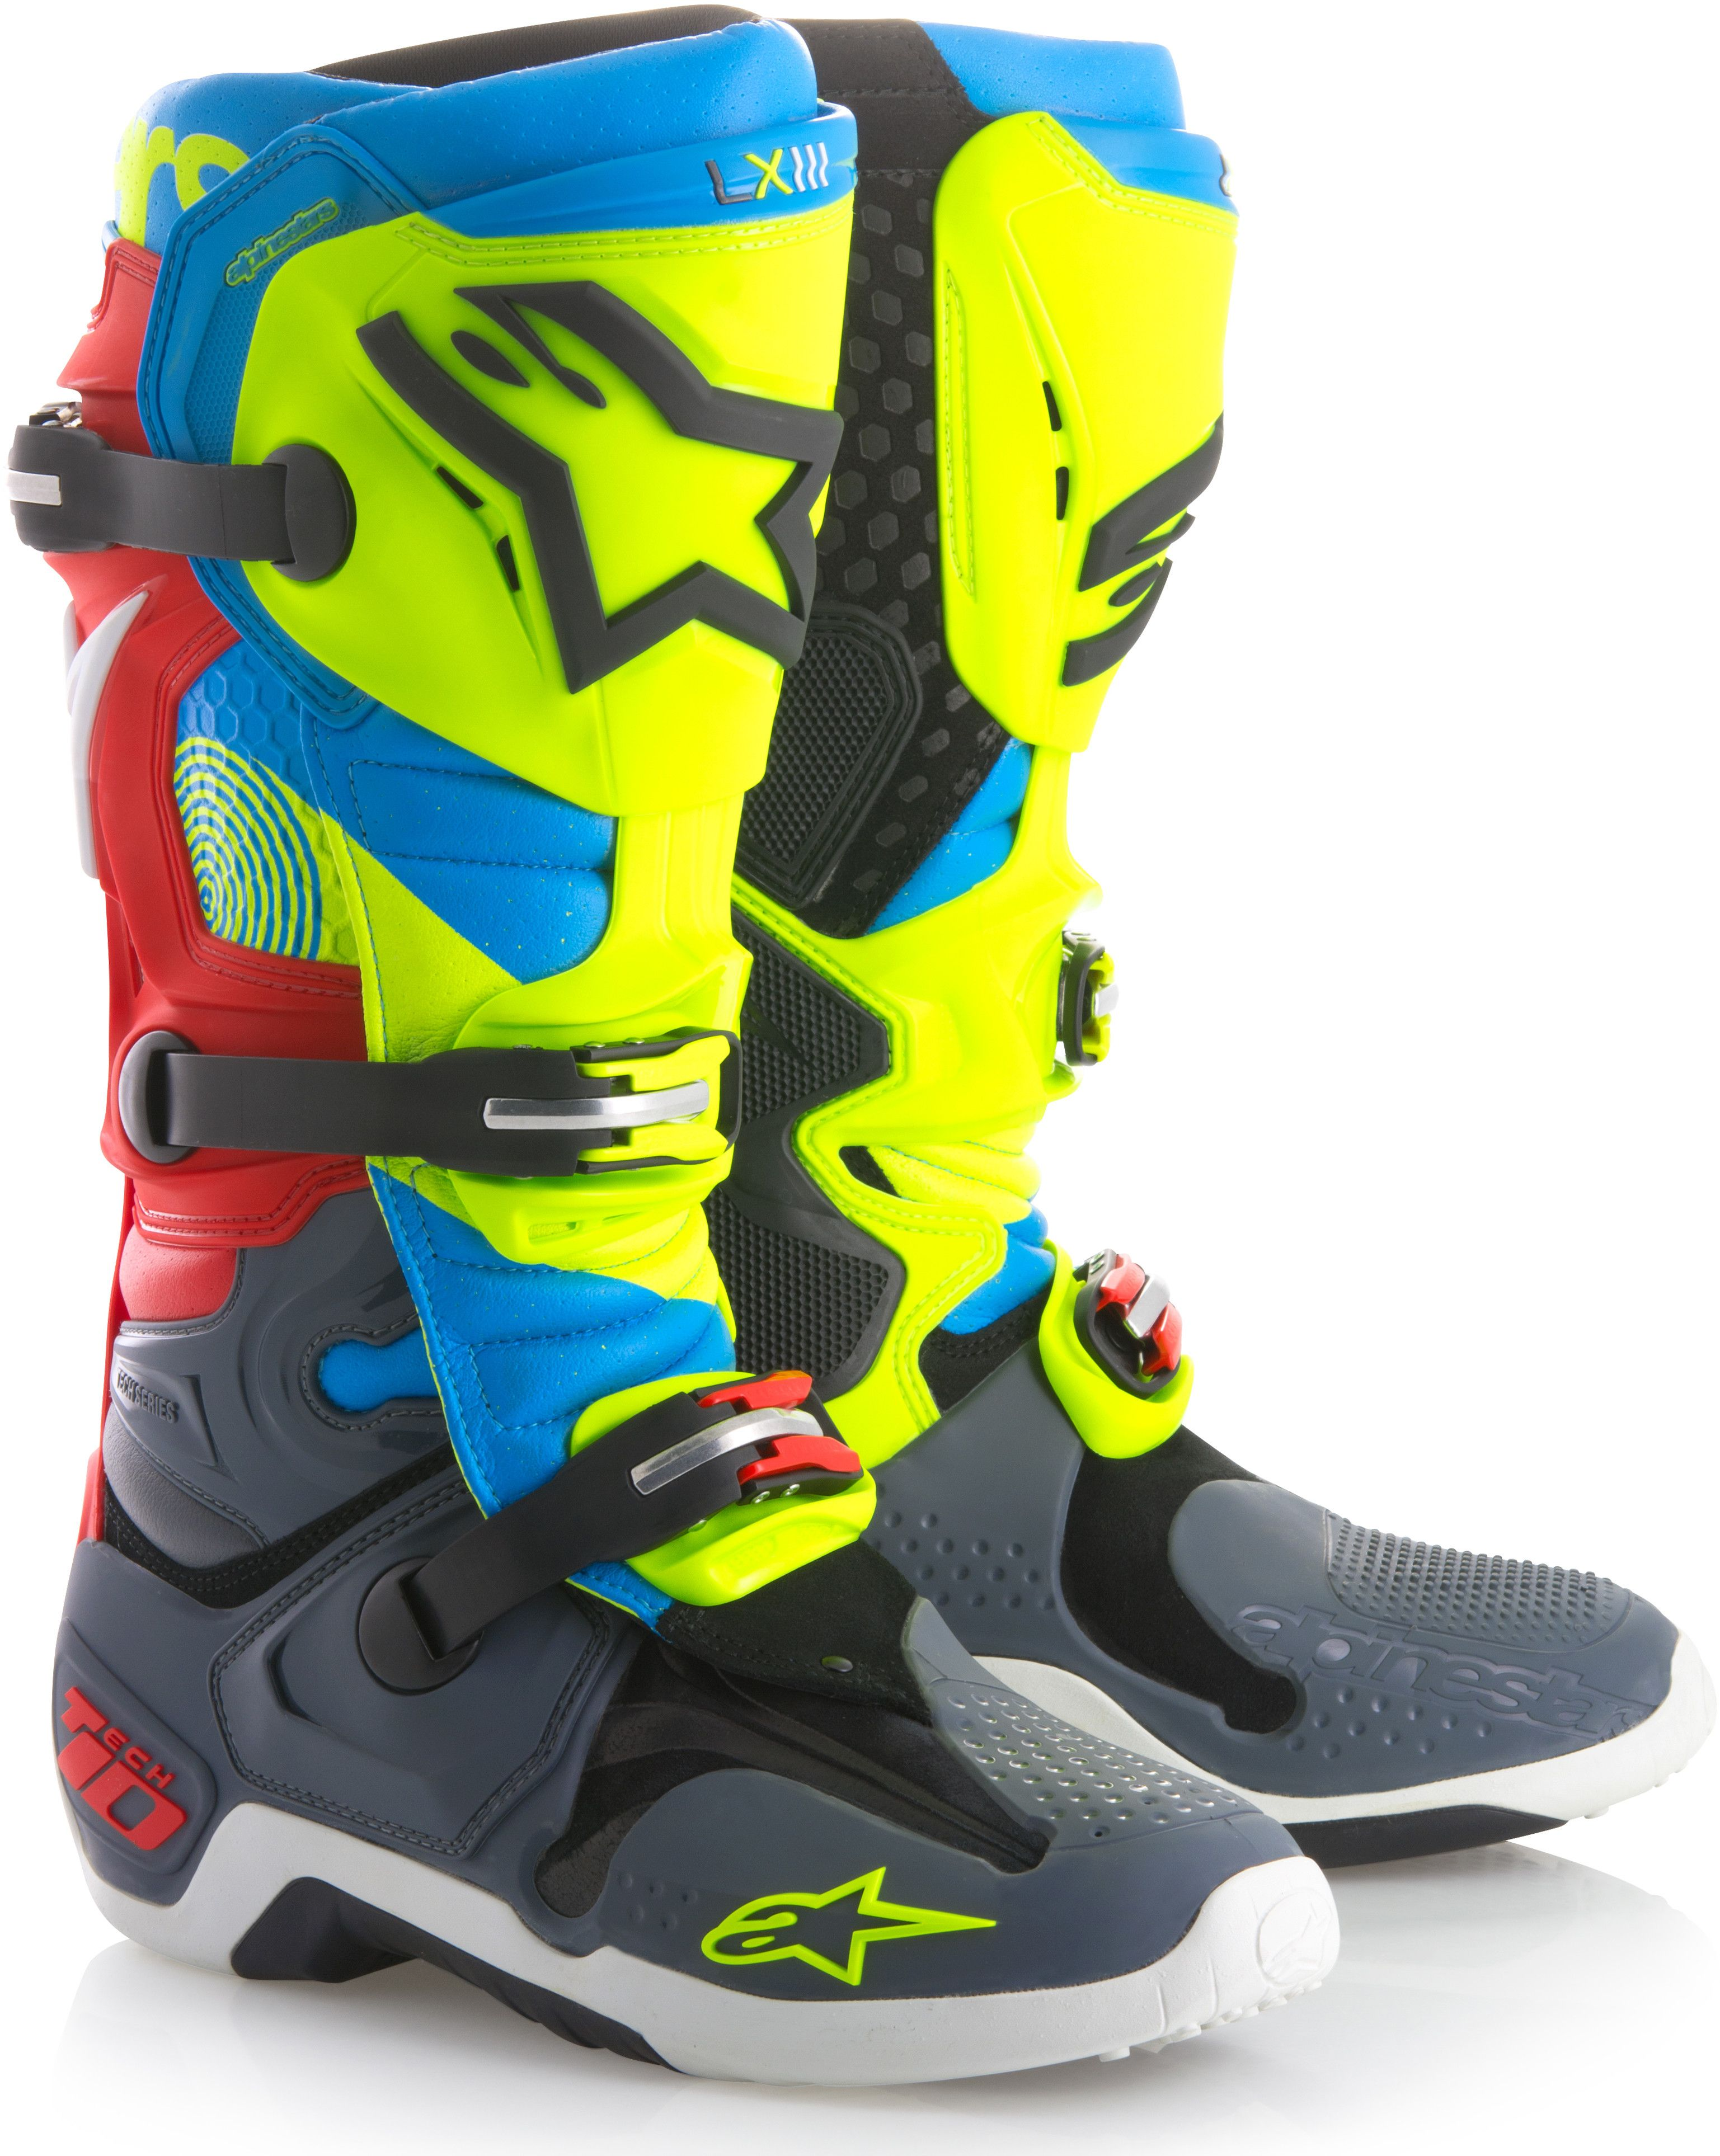 The Benchmark Boot In Motocross The Tech 10 Further Advances The